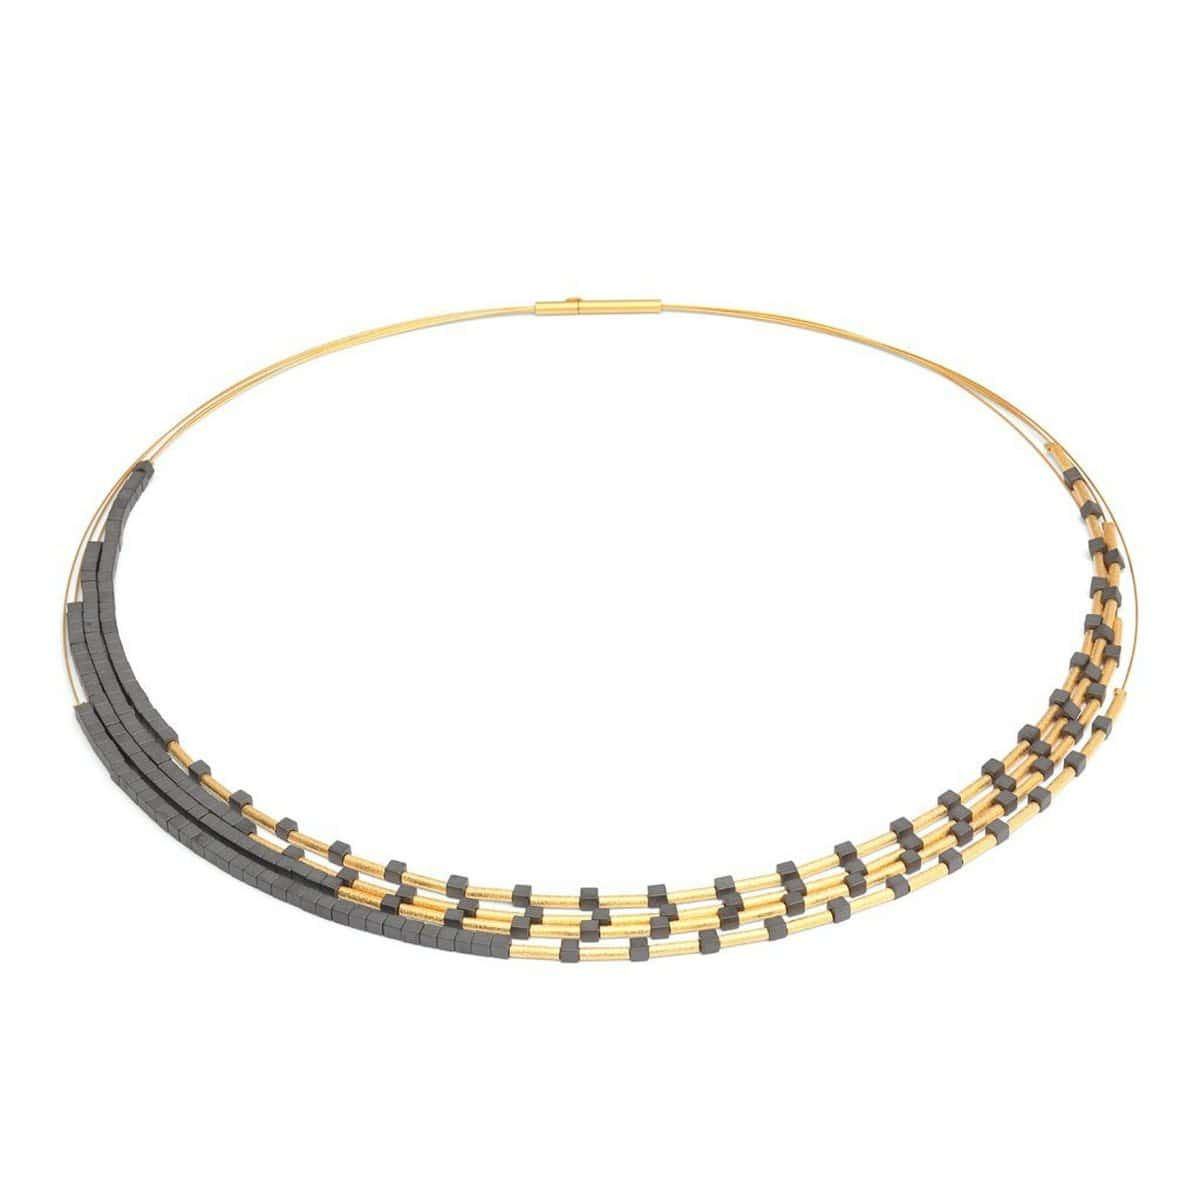 Cleama Hematite Necklace - 85372276-Bernd Wolf-Renee Taylor Gallery